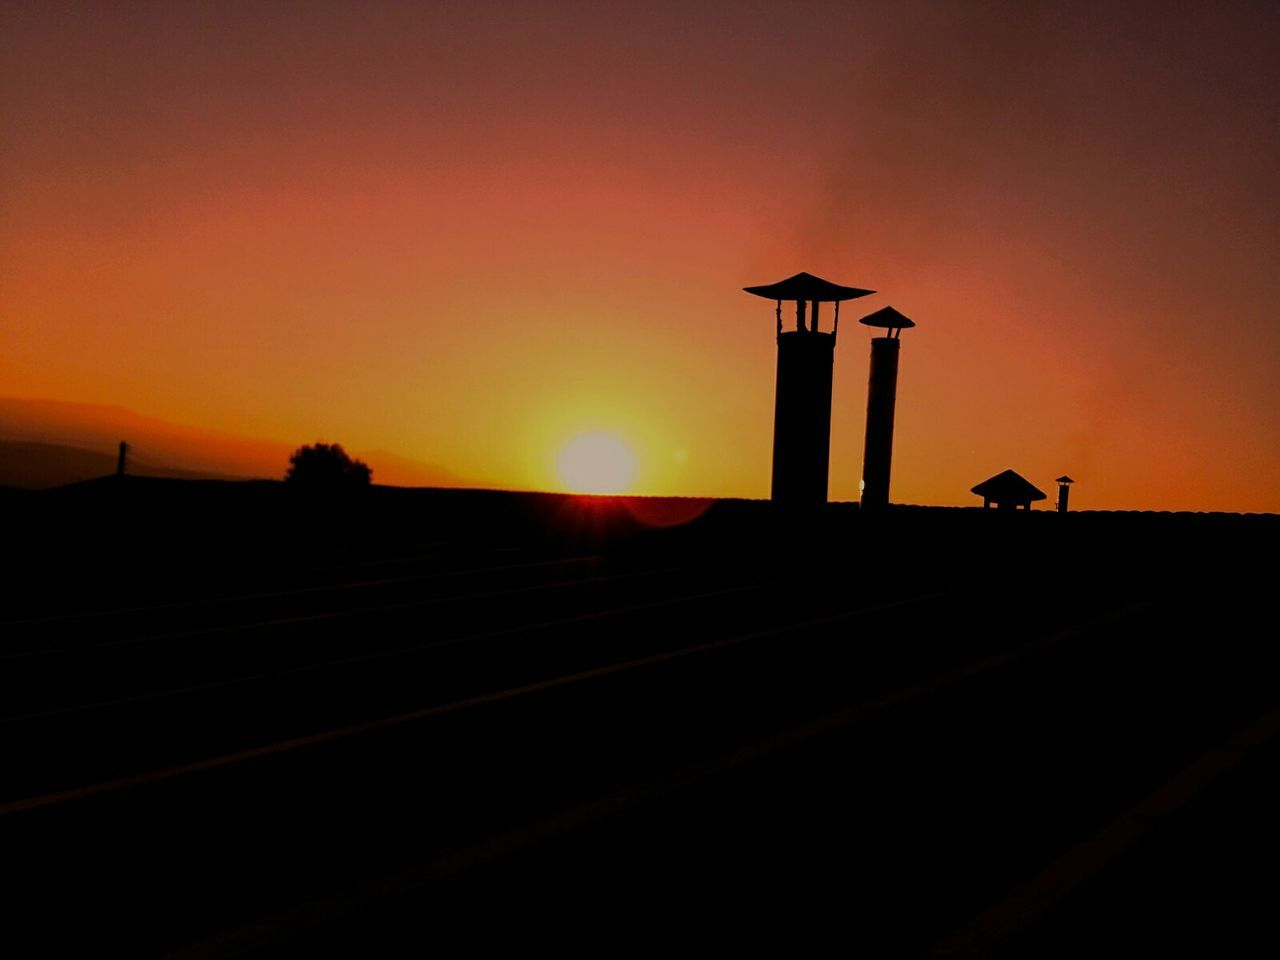 sunset, silhouette, orange color, sun, sky, tranquility, nature, no people, landscape, scenics, outdoors, beauty in nature, animal themes, day